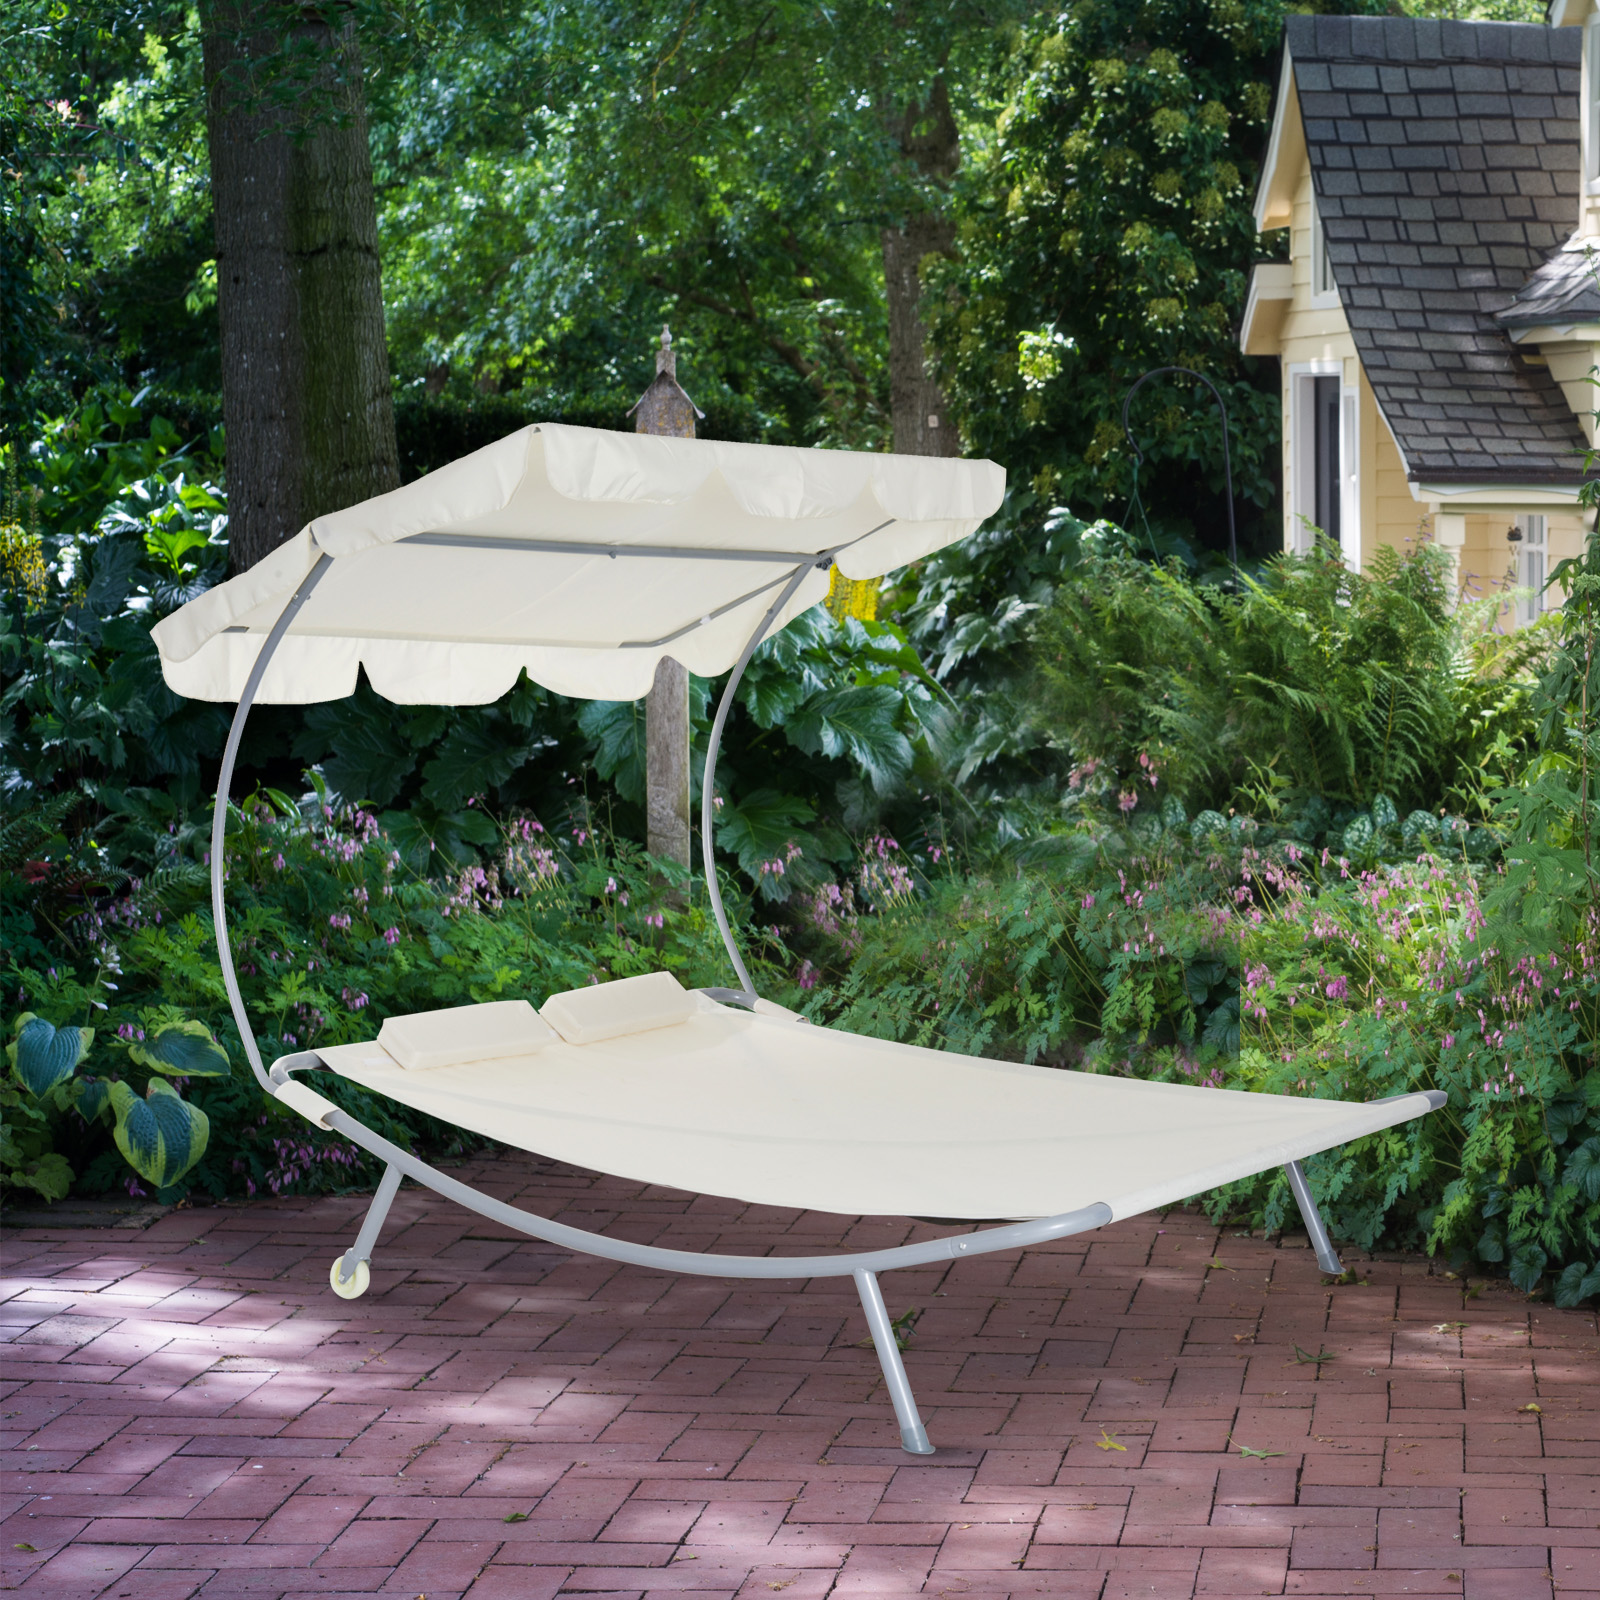 Outsunny Double Chaise Lounge Hammock Sunbed with Canopy and Stand Cream White